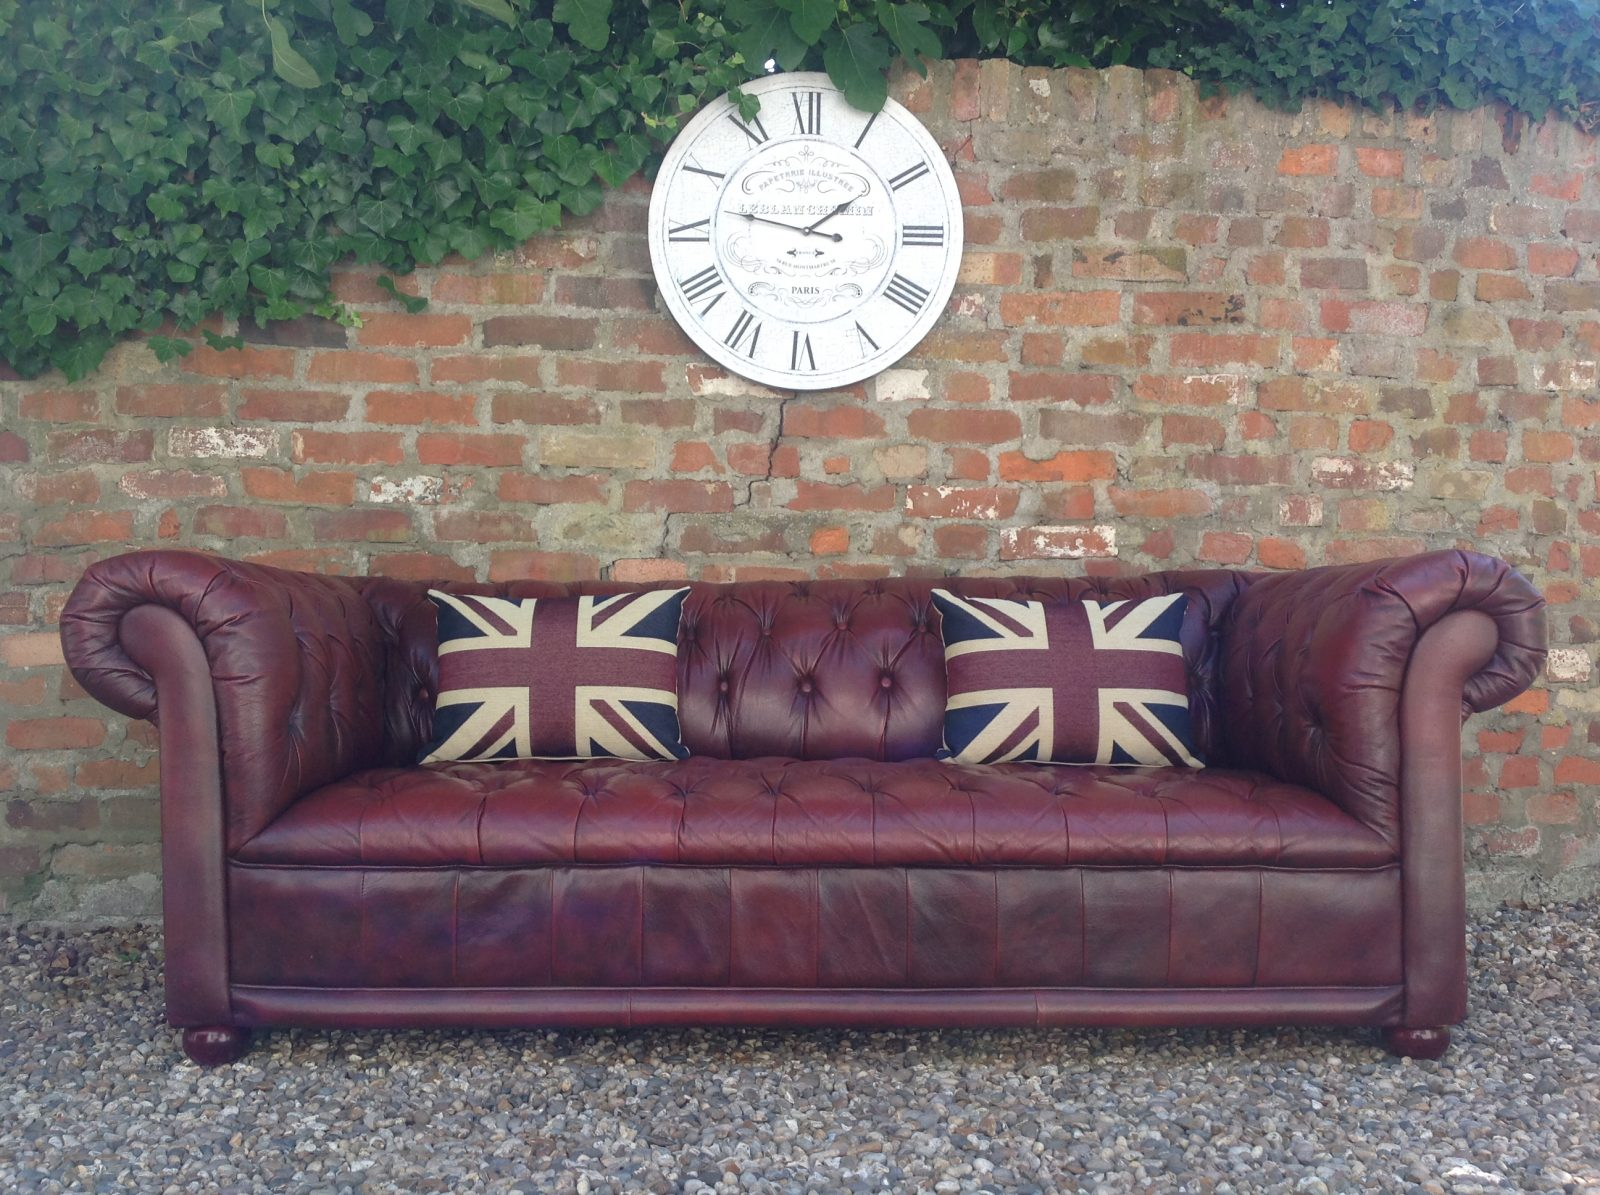 Classic Antique Red Vintage Chesterfield Sofa.